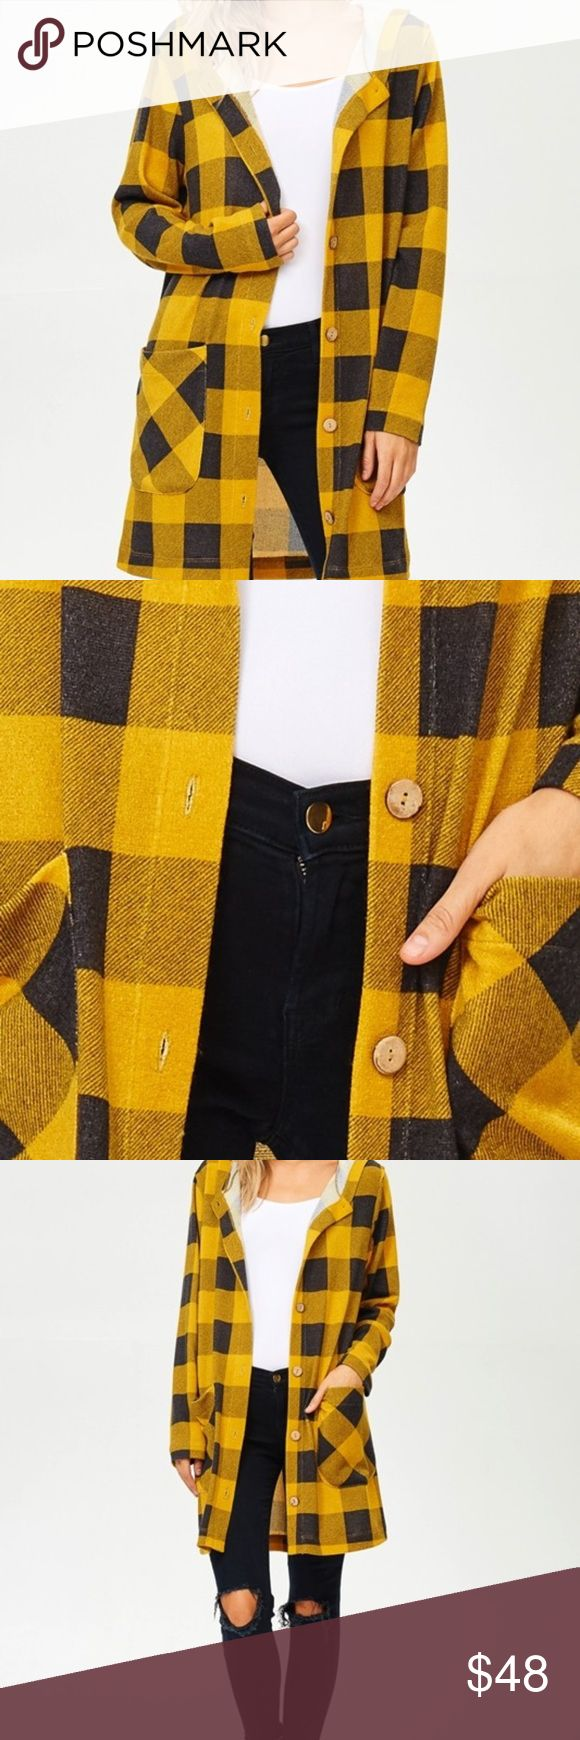 Ladies Mustard Black Buffalo Plaid Hoodie Cardigan Ladies buffalo plaid button-up sweater hoodie cardigan with front pockets Makes a great layering piece! 94% Polyester 6% Spandex Hailey & Co Jackets & Coats